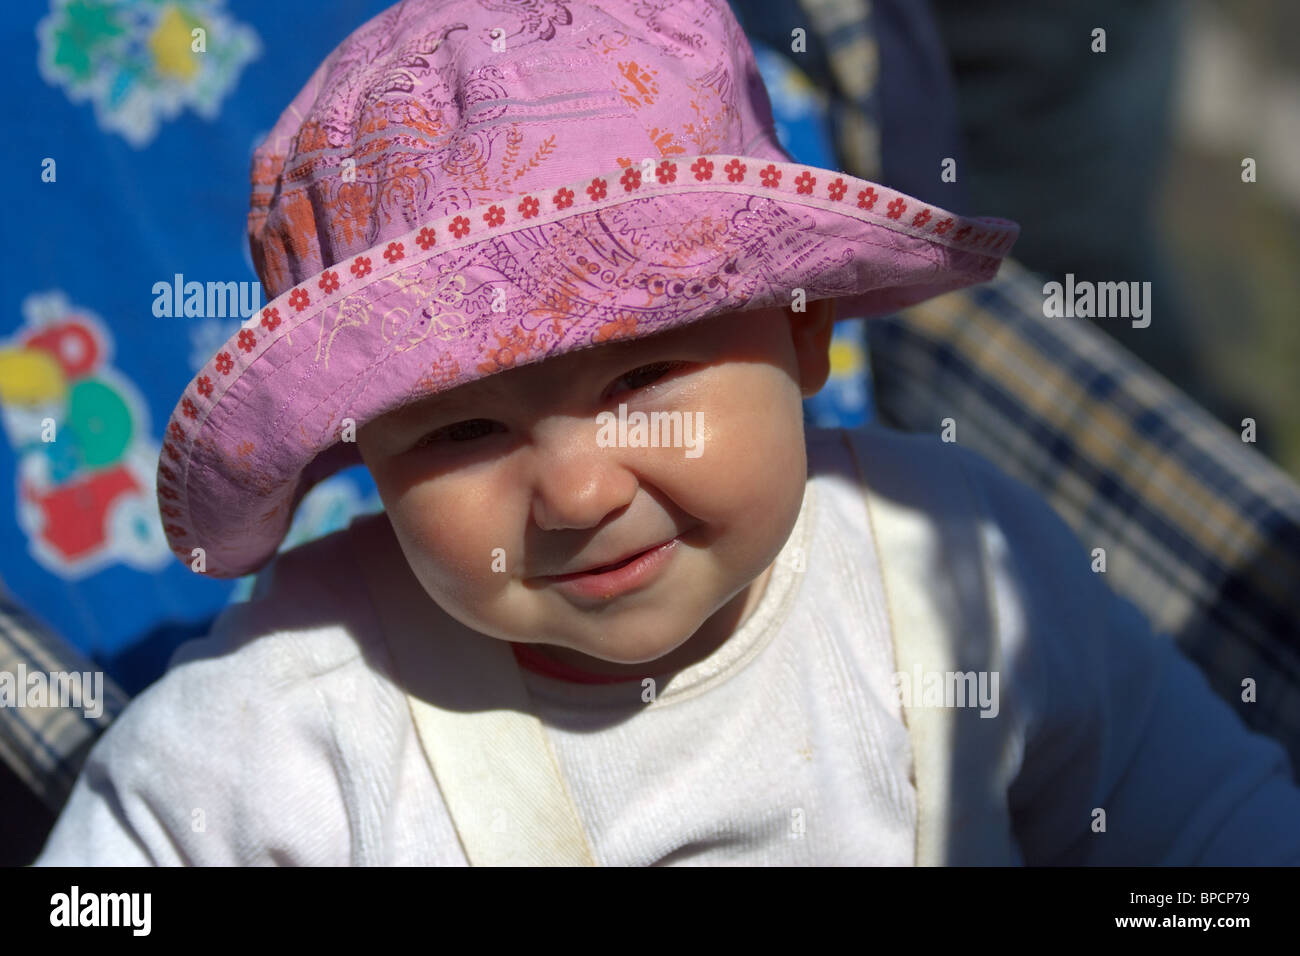 close-up of adorable baby with round cheeks sailor hat and lovely fun expression. Horizontal - Stock Image